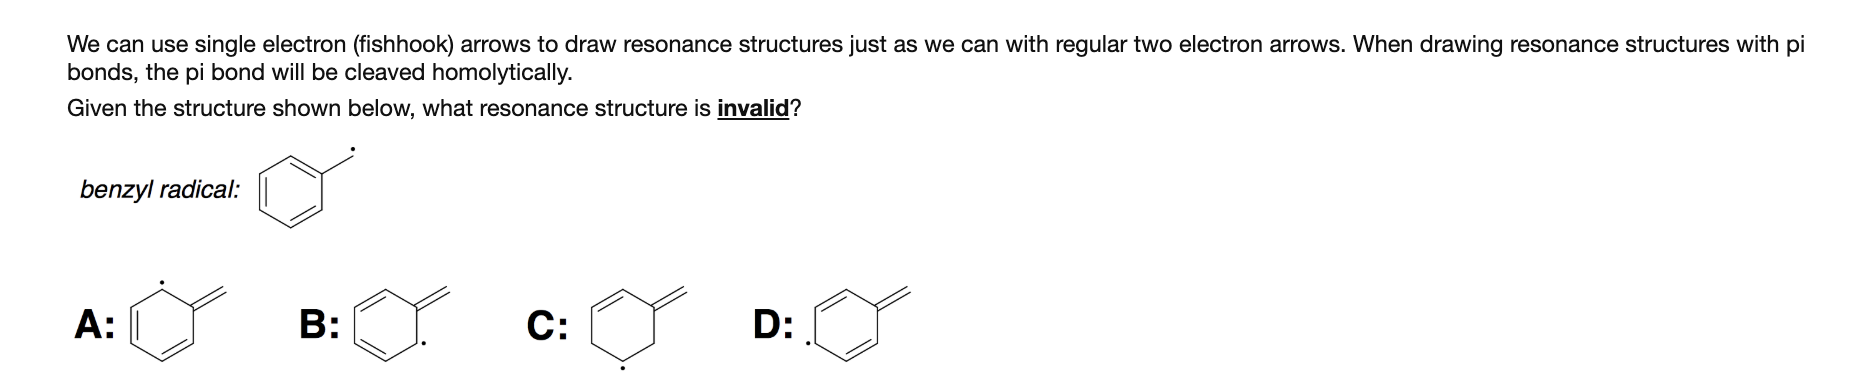 We can use single electron (fishhook) arrows to draw resonance structures just as we can with regular two electron arrows. When drawing resonance structures with pi bonds, the pi bond will be cleaved homolytically. Given the structure shown below, what resonance structure is invalid? benzyl radical: C: B: A: D: